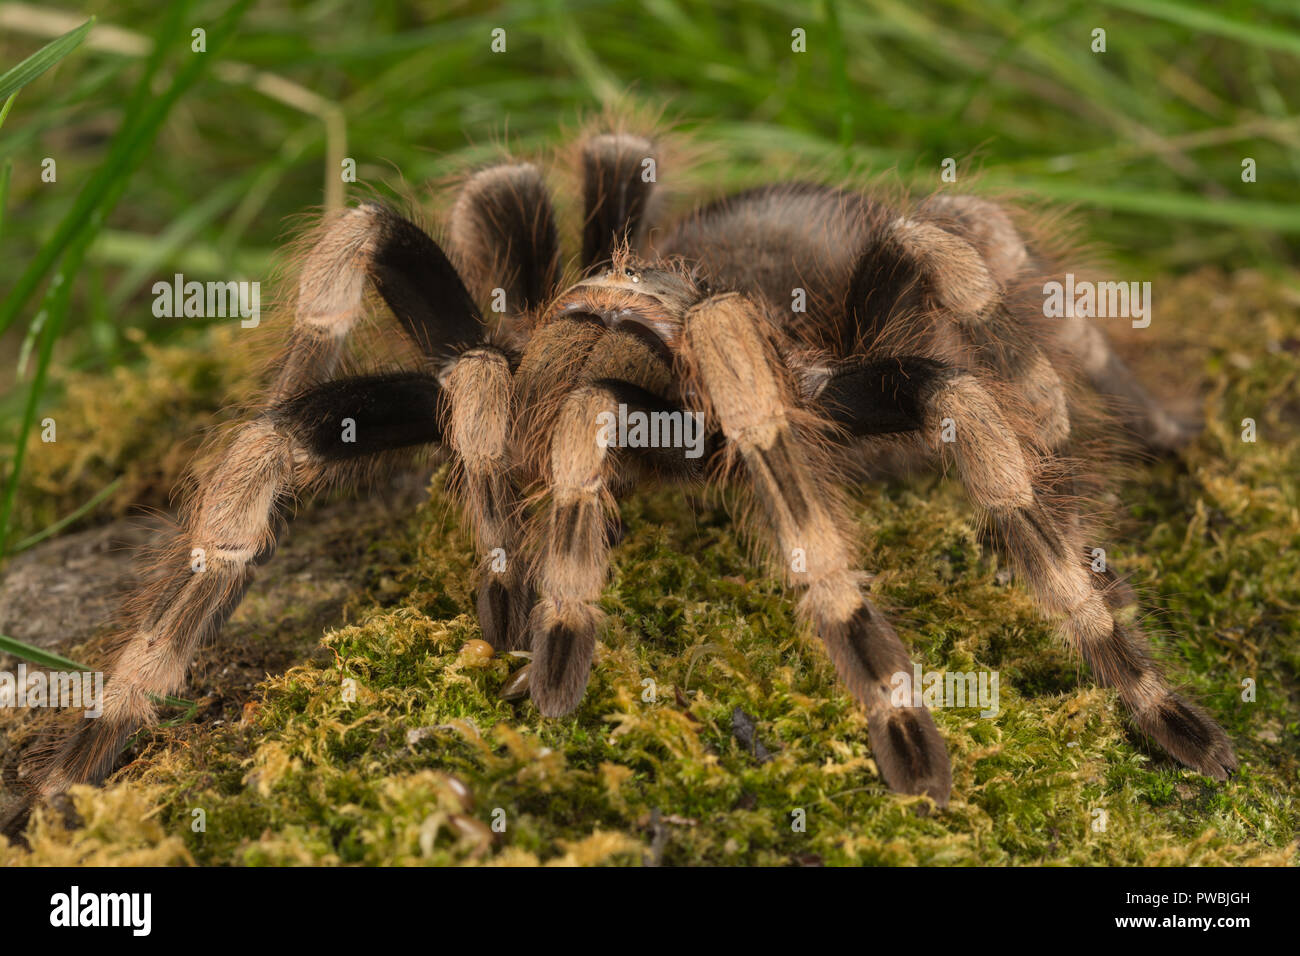 Mexican White Knee Tarantula Spider Acanthoscurria